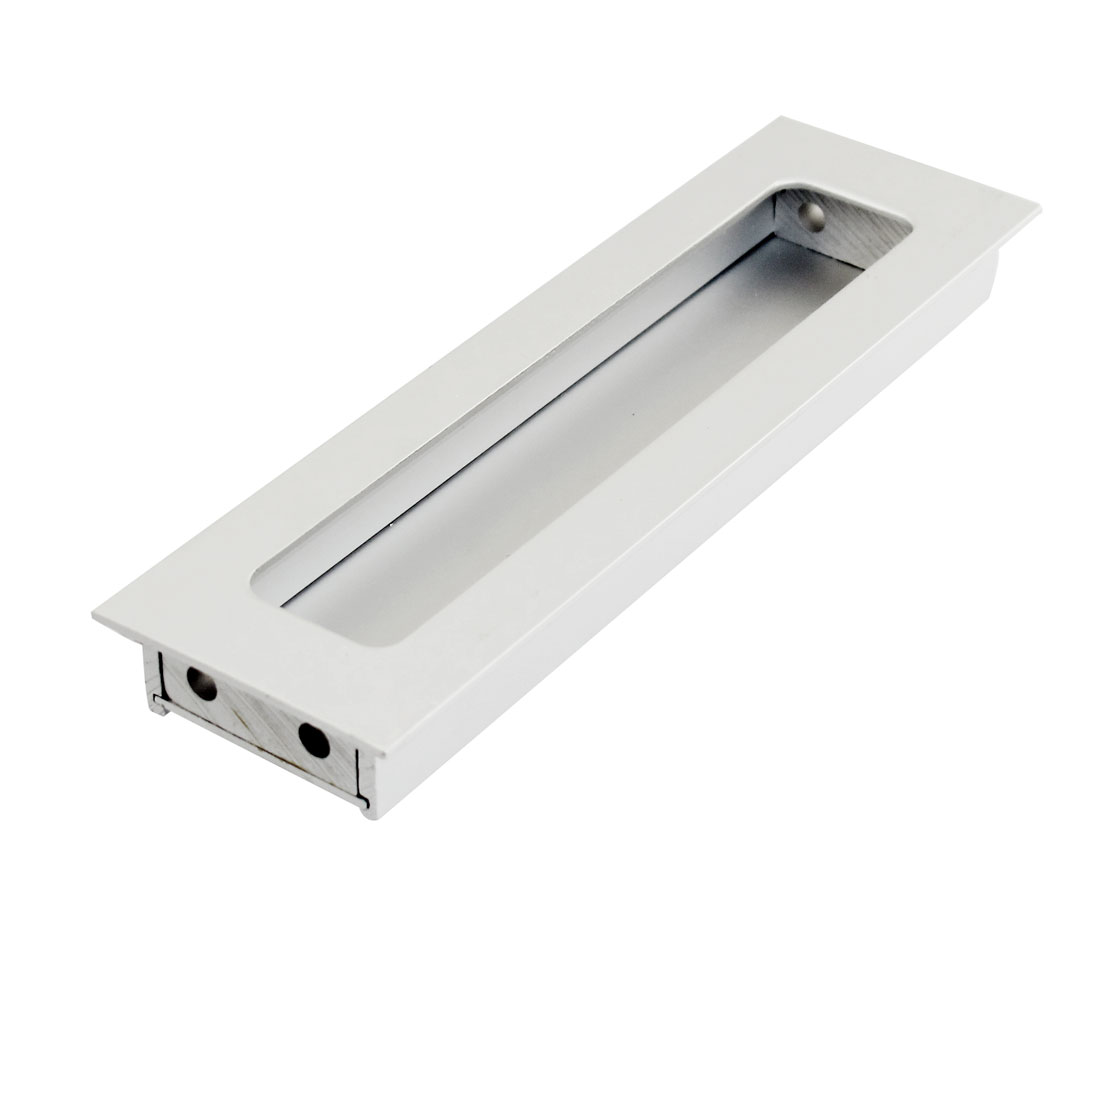 Rectangle 14.5cm Length Flush Pull Door Handle for Drawer Cabinet